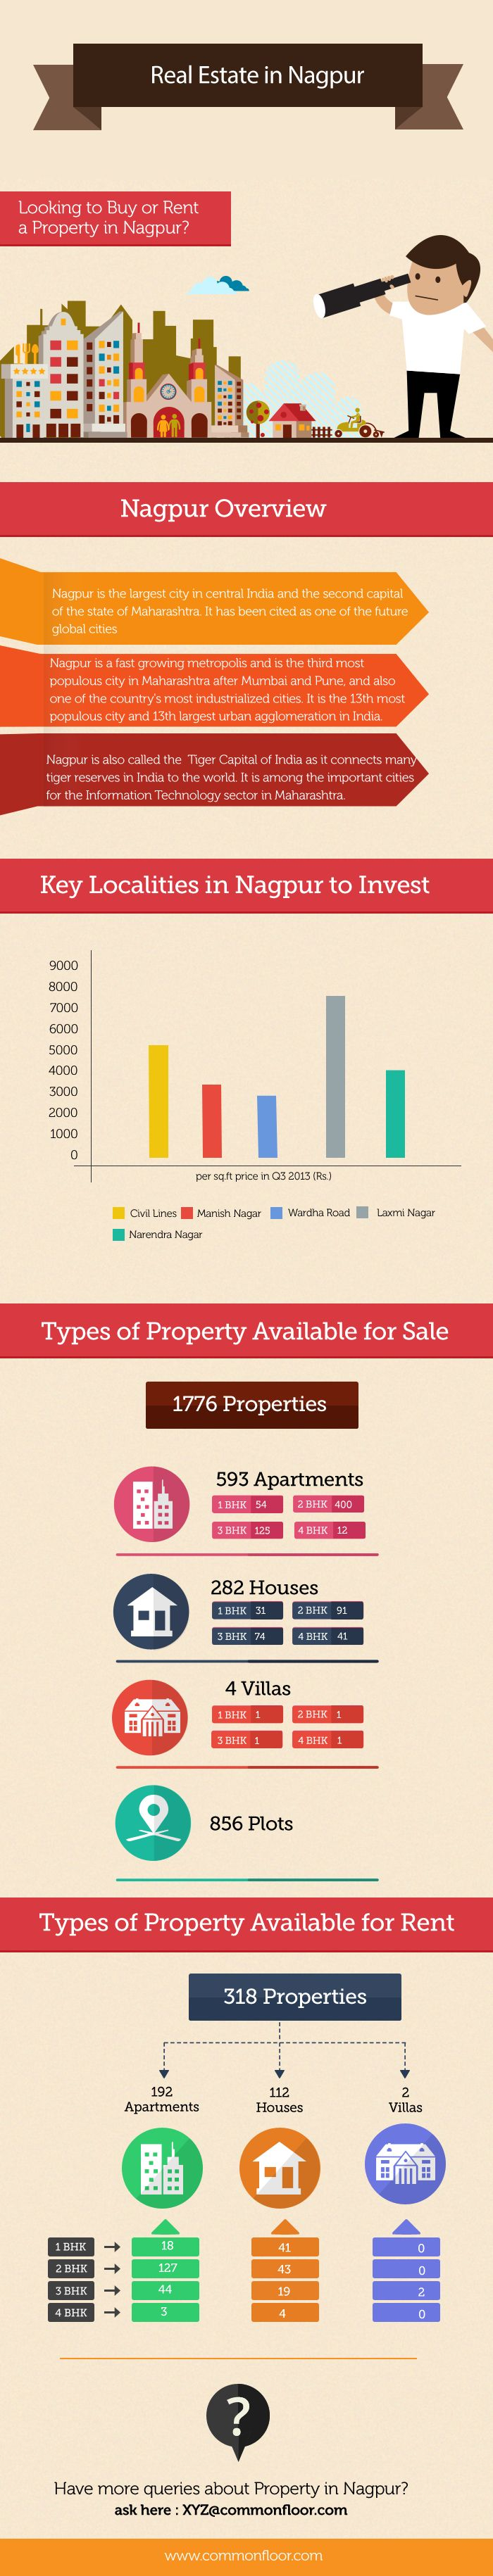 Real estate in Nagpur is witnessing continuous growth. Residential, commercial and retail real estate market is currently witnessing an upsurge due to few favorable factors.  Property seekers in Nagpur can find 1735 properties for sale. Out of which 593 apartments, 282 houses, 4 villas and 856 are plots.  For more Information on Properties in Nagpur: http://www.commonfloor.com/nagpur-city